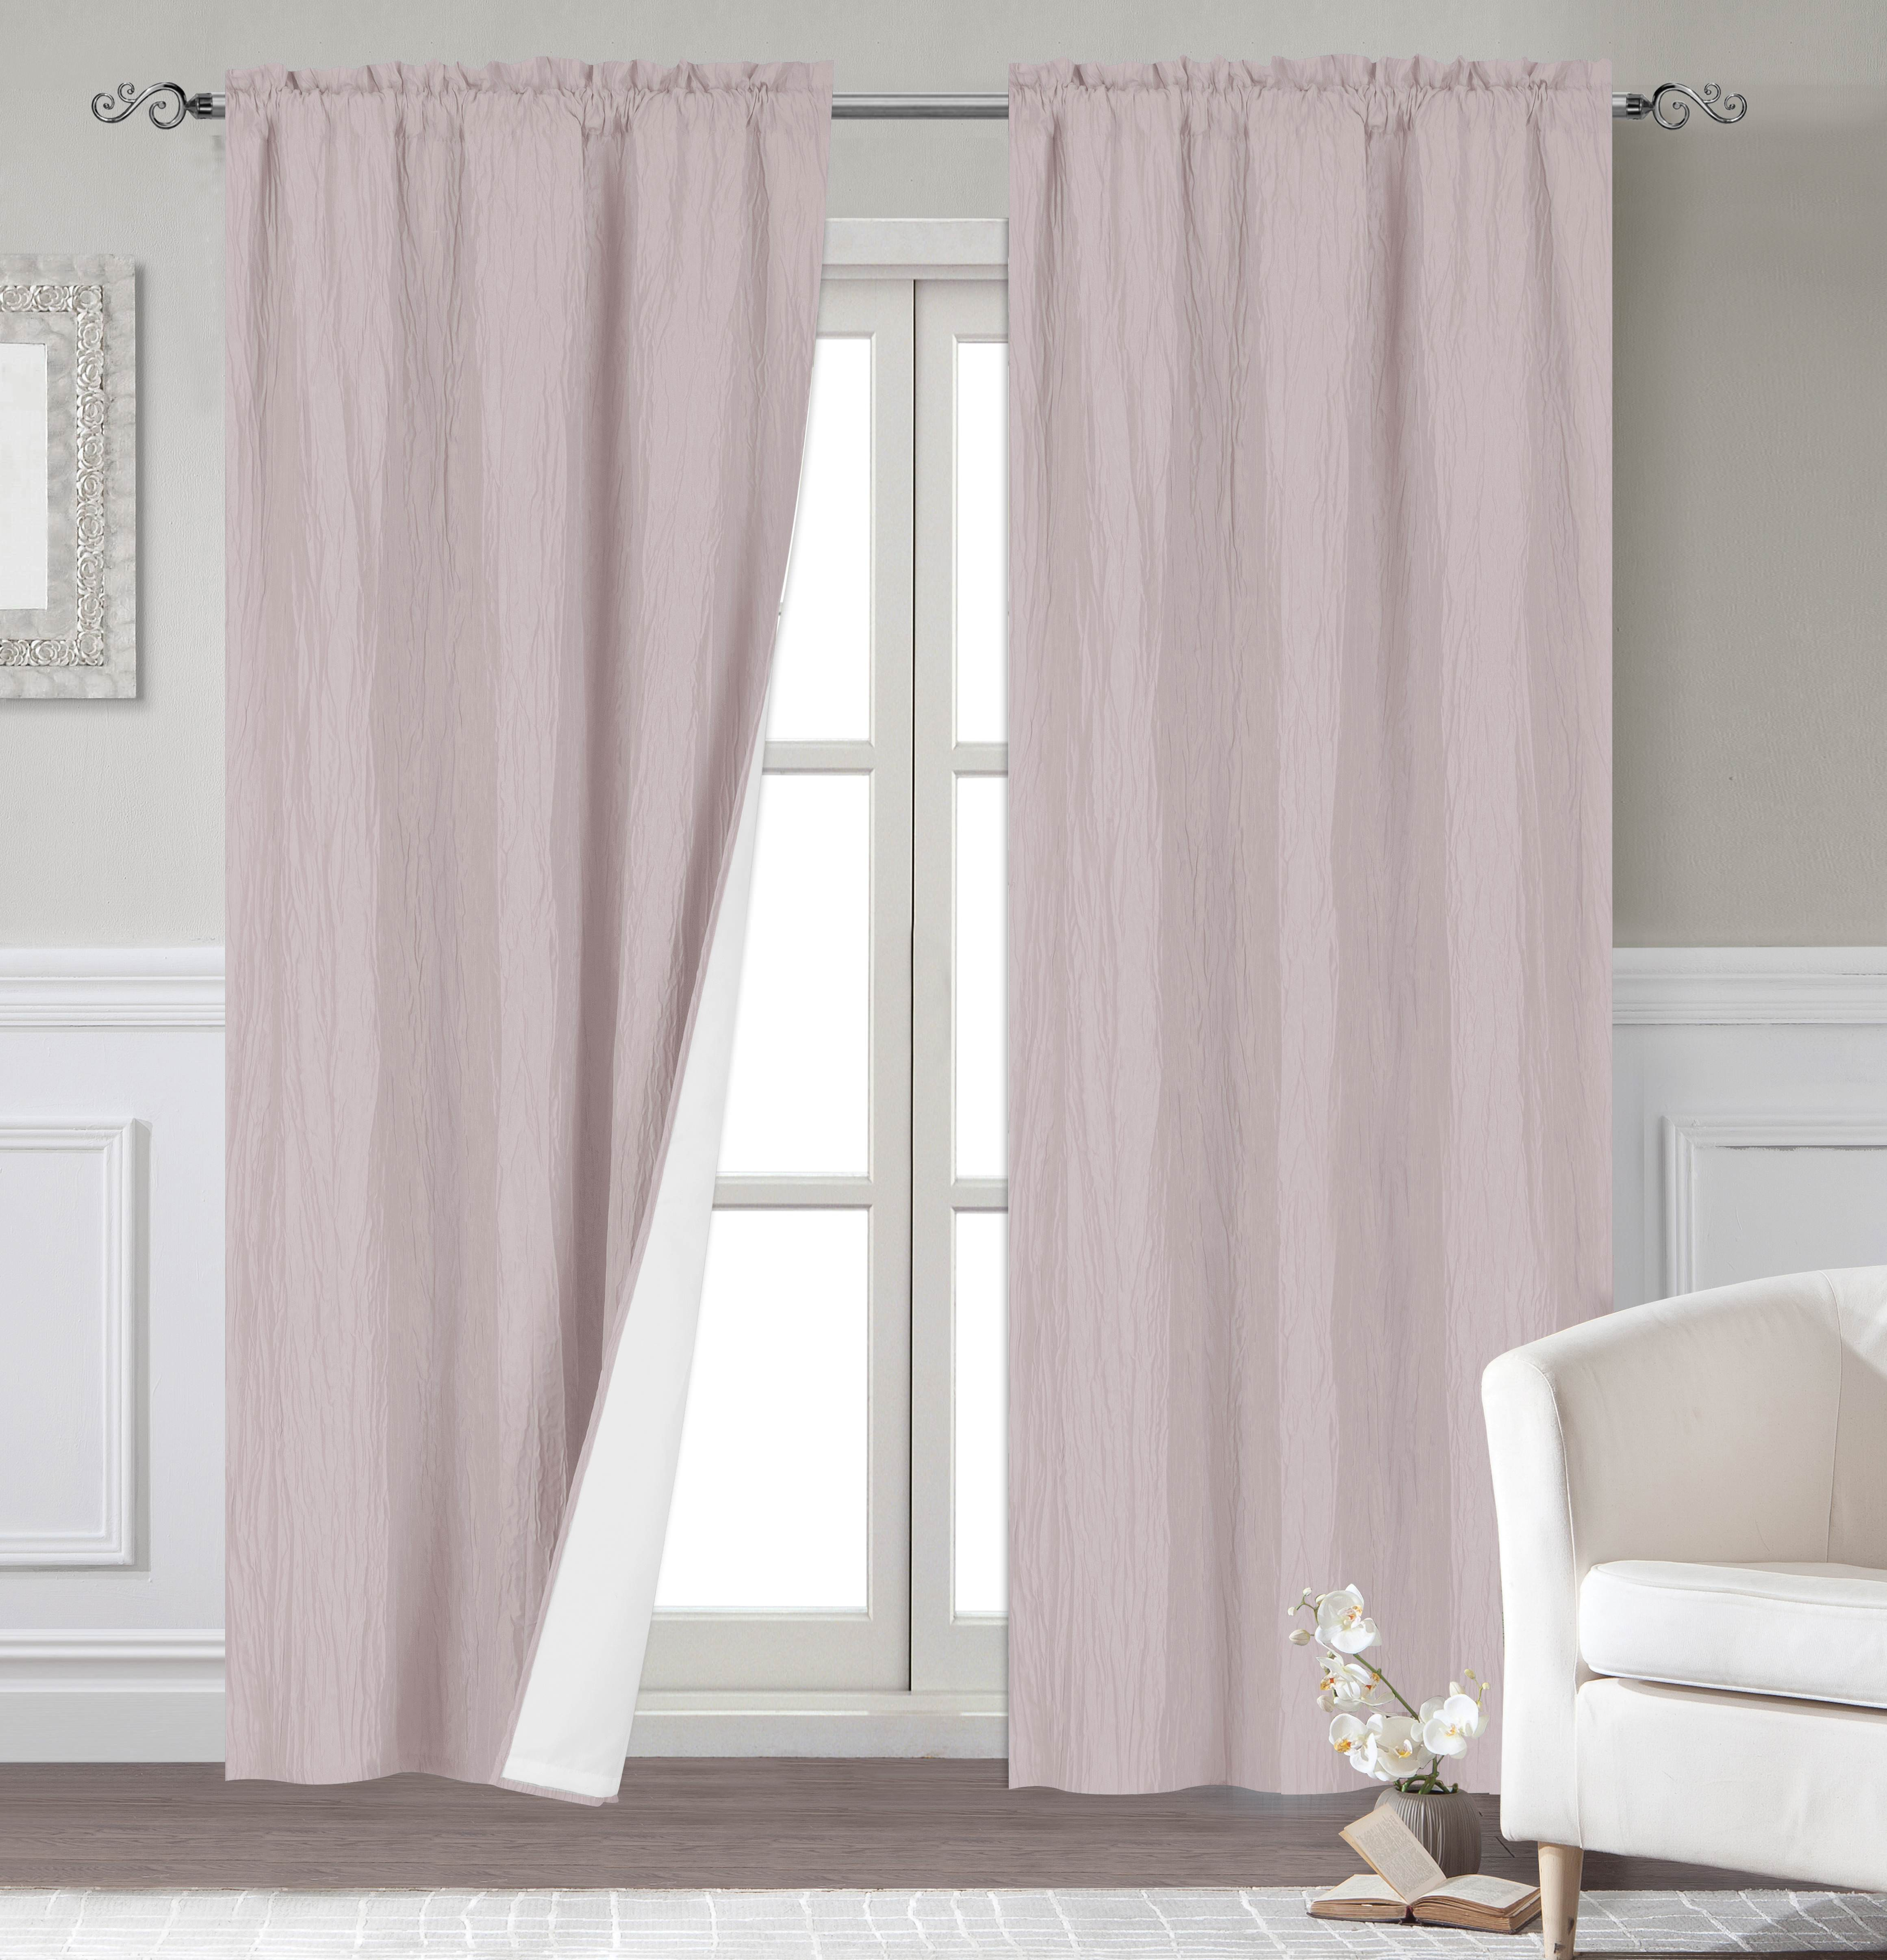 Dainty Home Venetian Blackout Window Curtain Panel Pair With Thermal Lining Pertaining To Thermal Rod Pocket Blackout Curtain Panel Pairs (View 21 of 30)